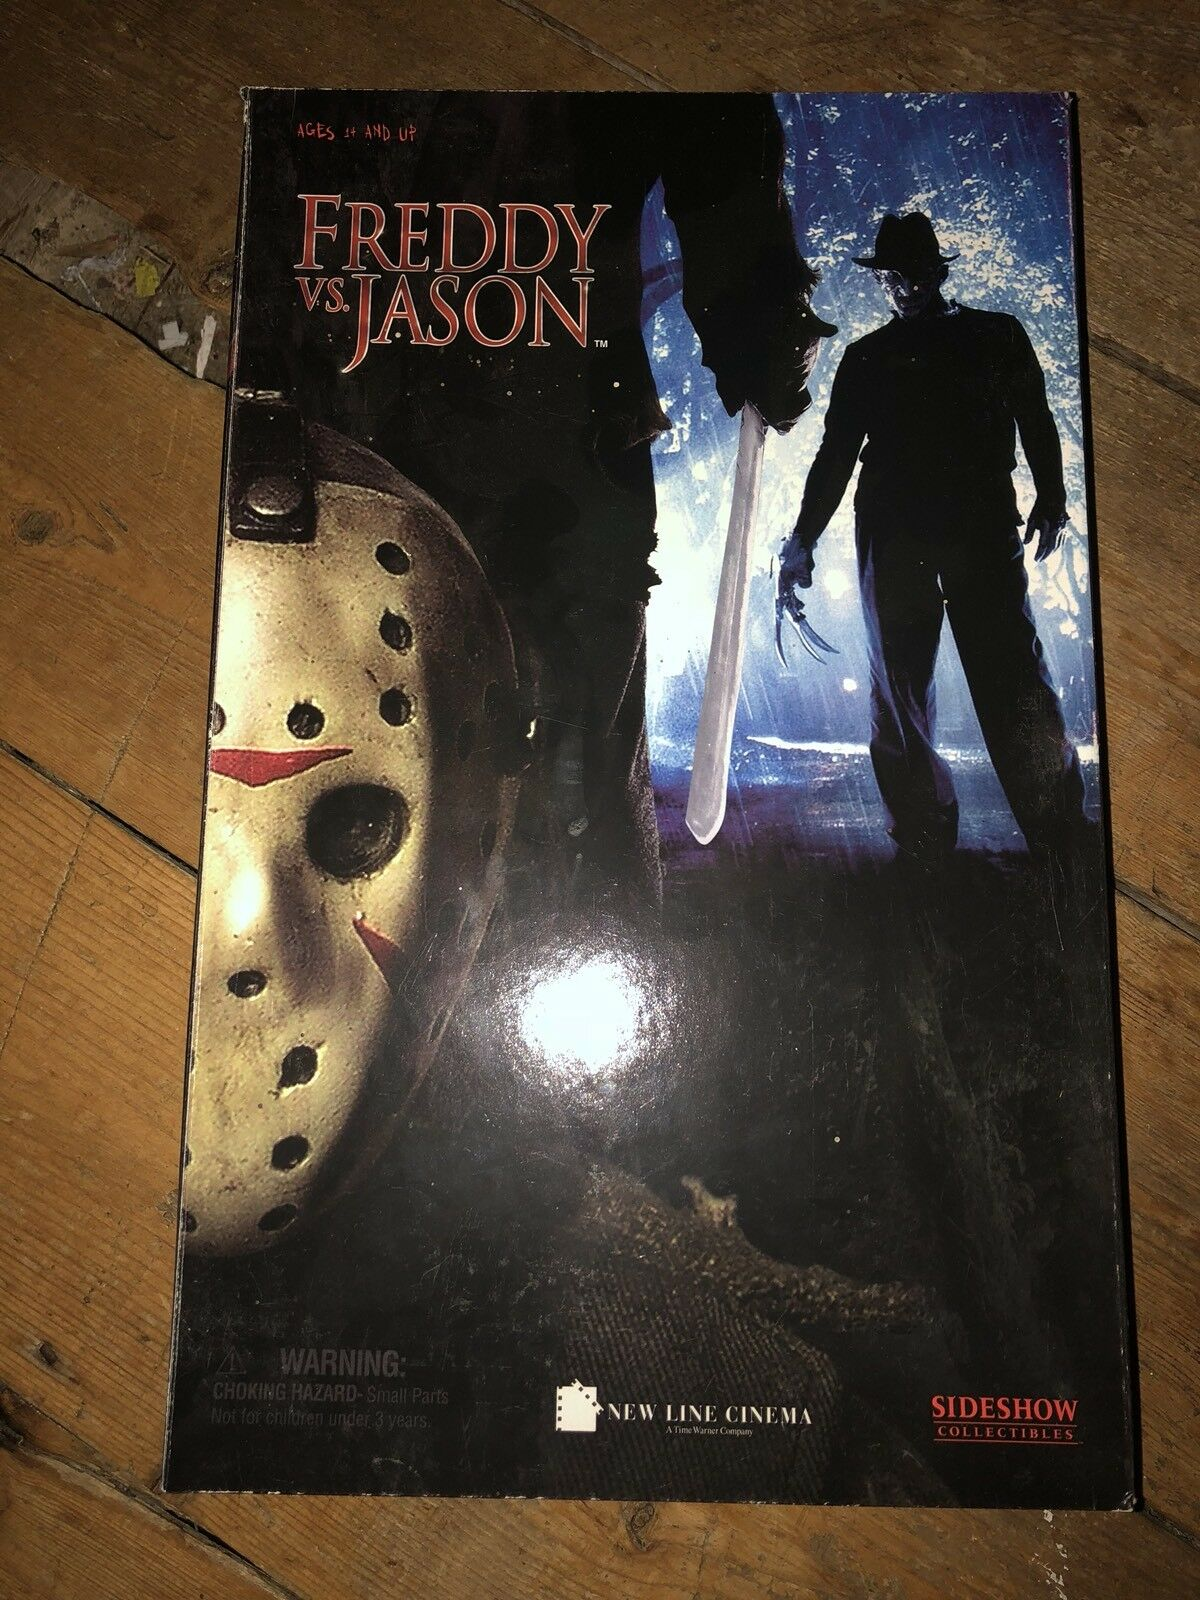 Sidemostrare Frossody contro Jason Voorhees AF SSC 157